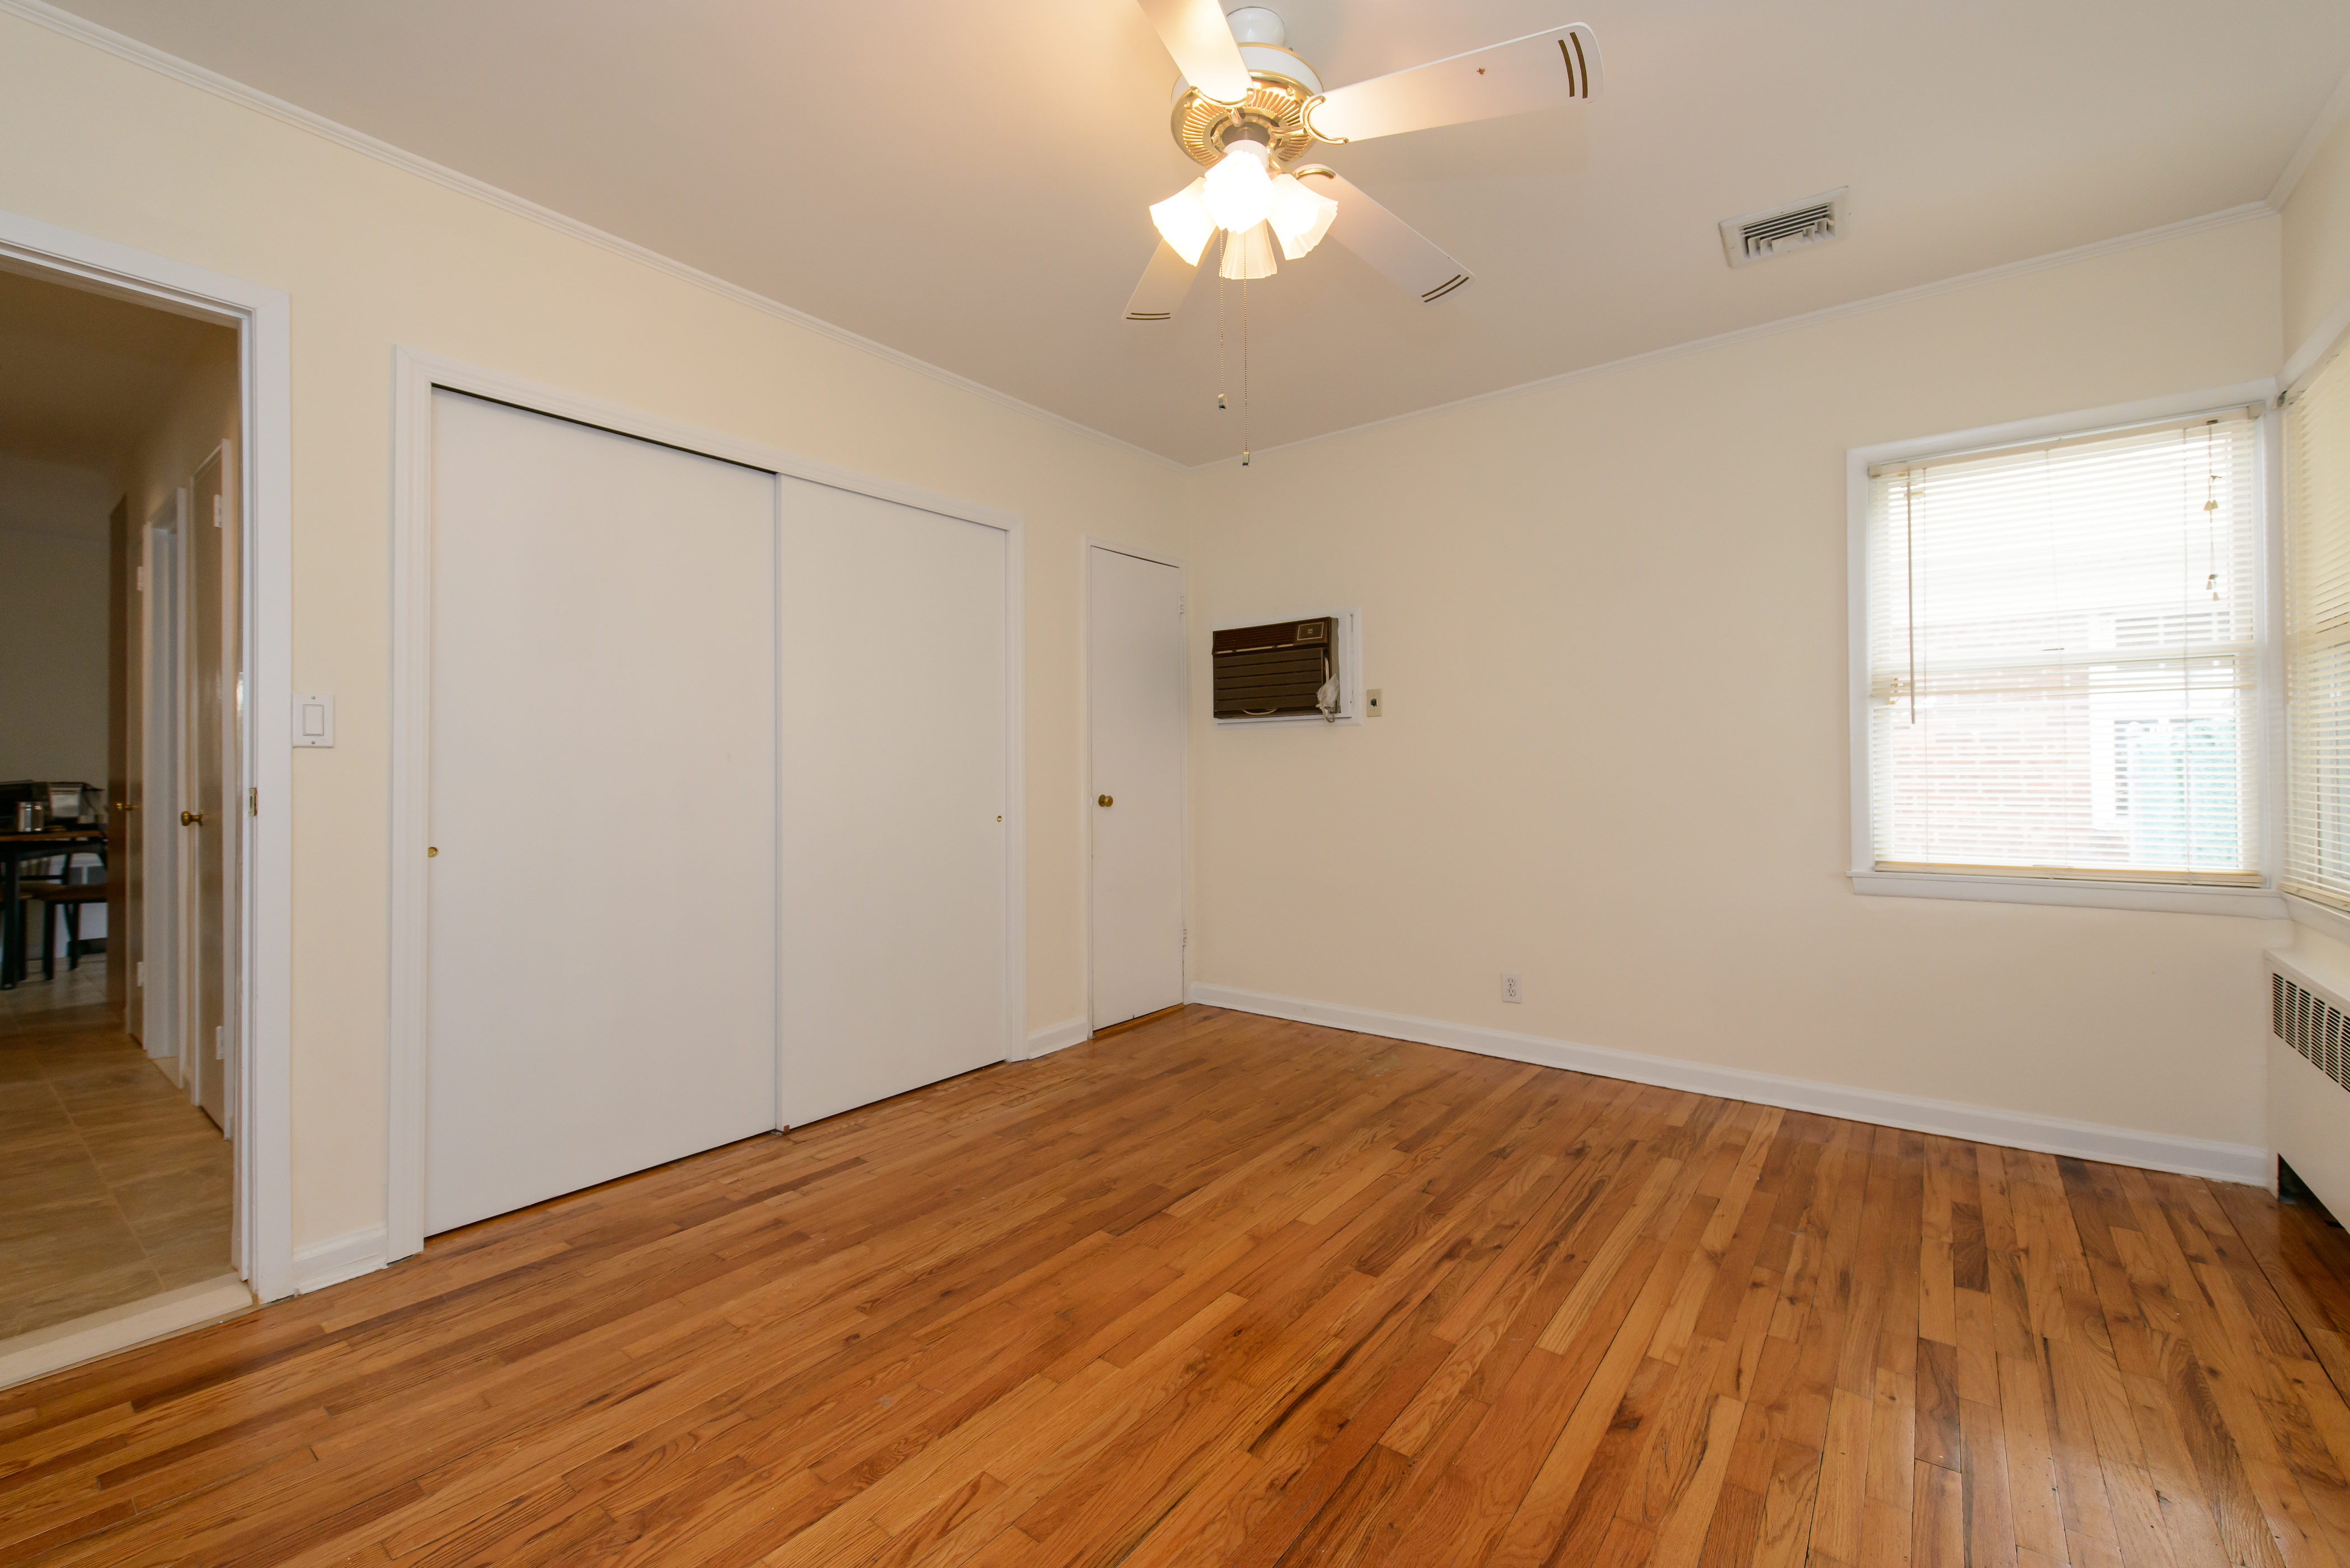 Additional photo for property listing at Colonial 218-23 56 Ave Bayside, New York 11364 United States